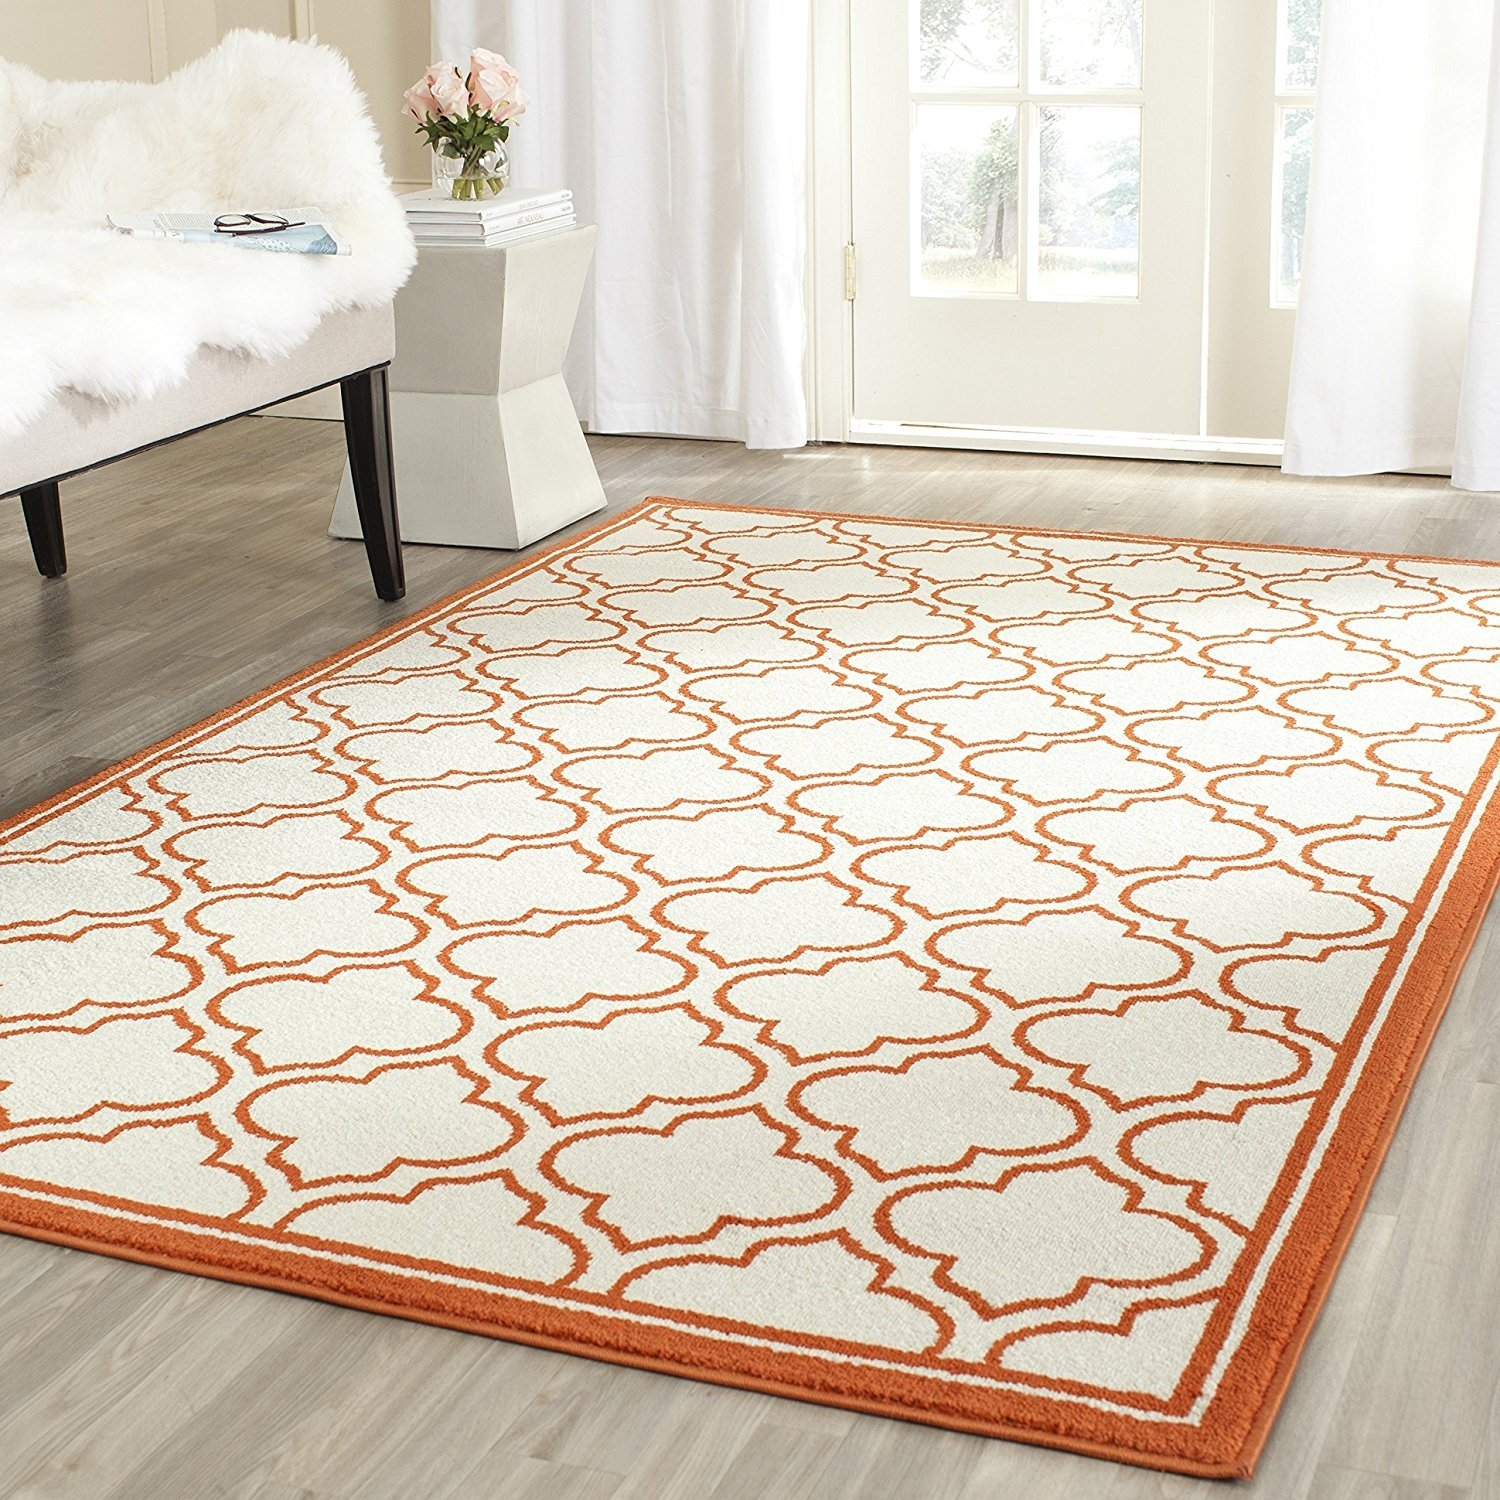 Safavieh Amherst Collection Amt412f Ivory And Orange Indoor Outdoor